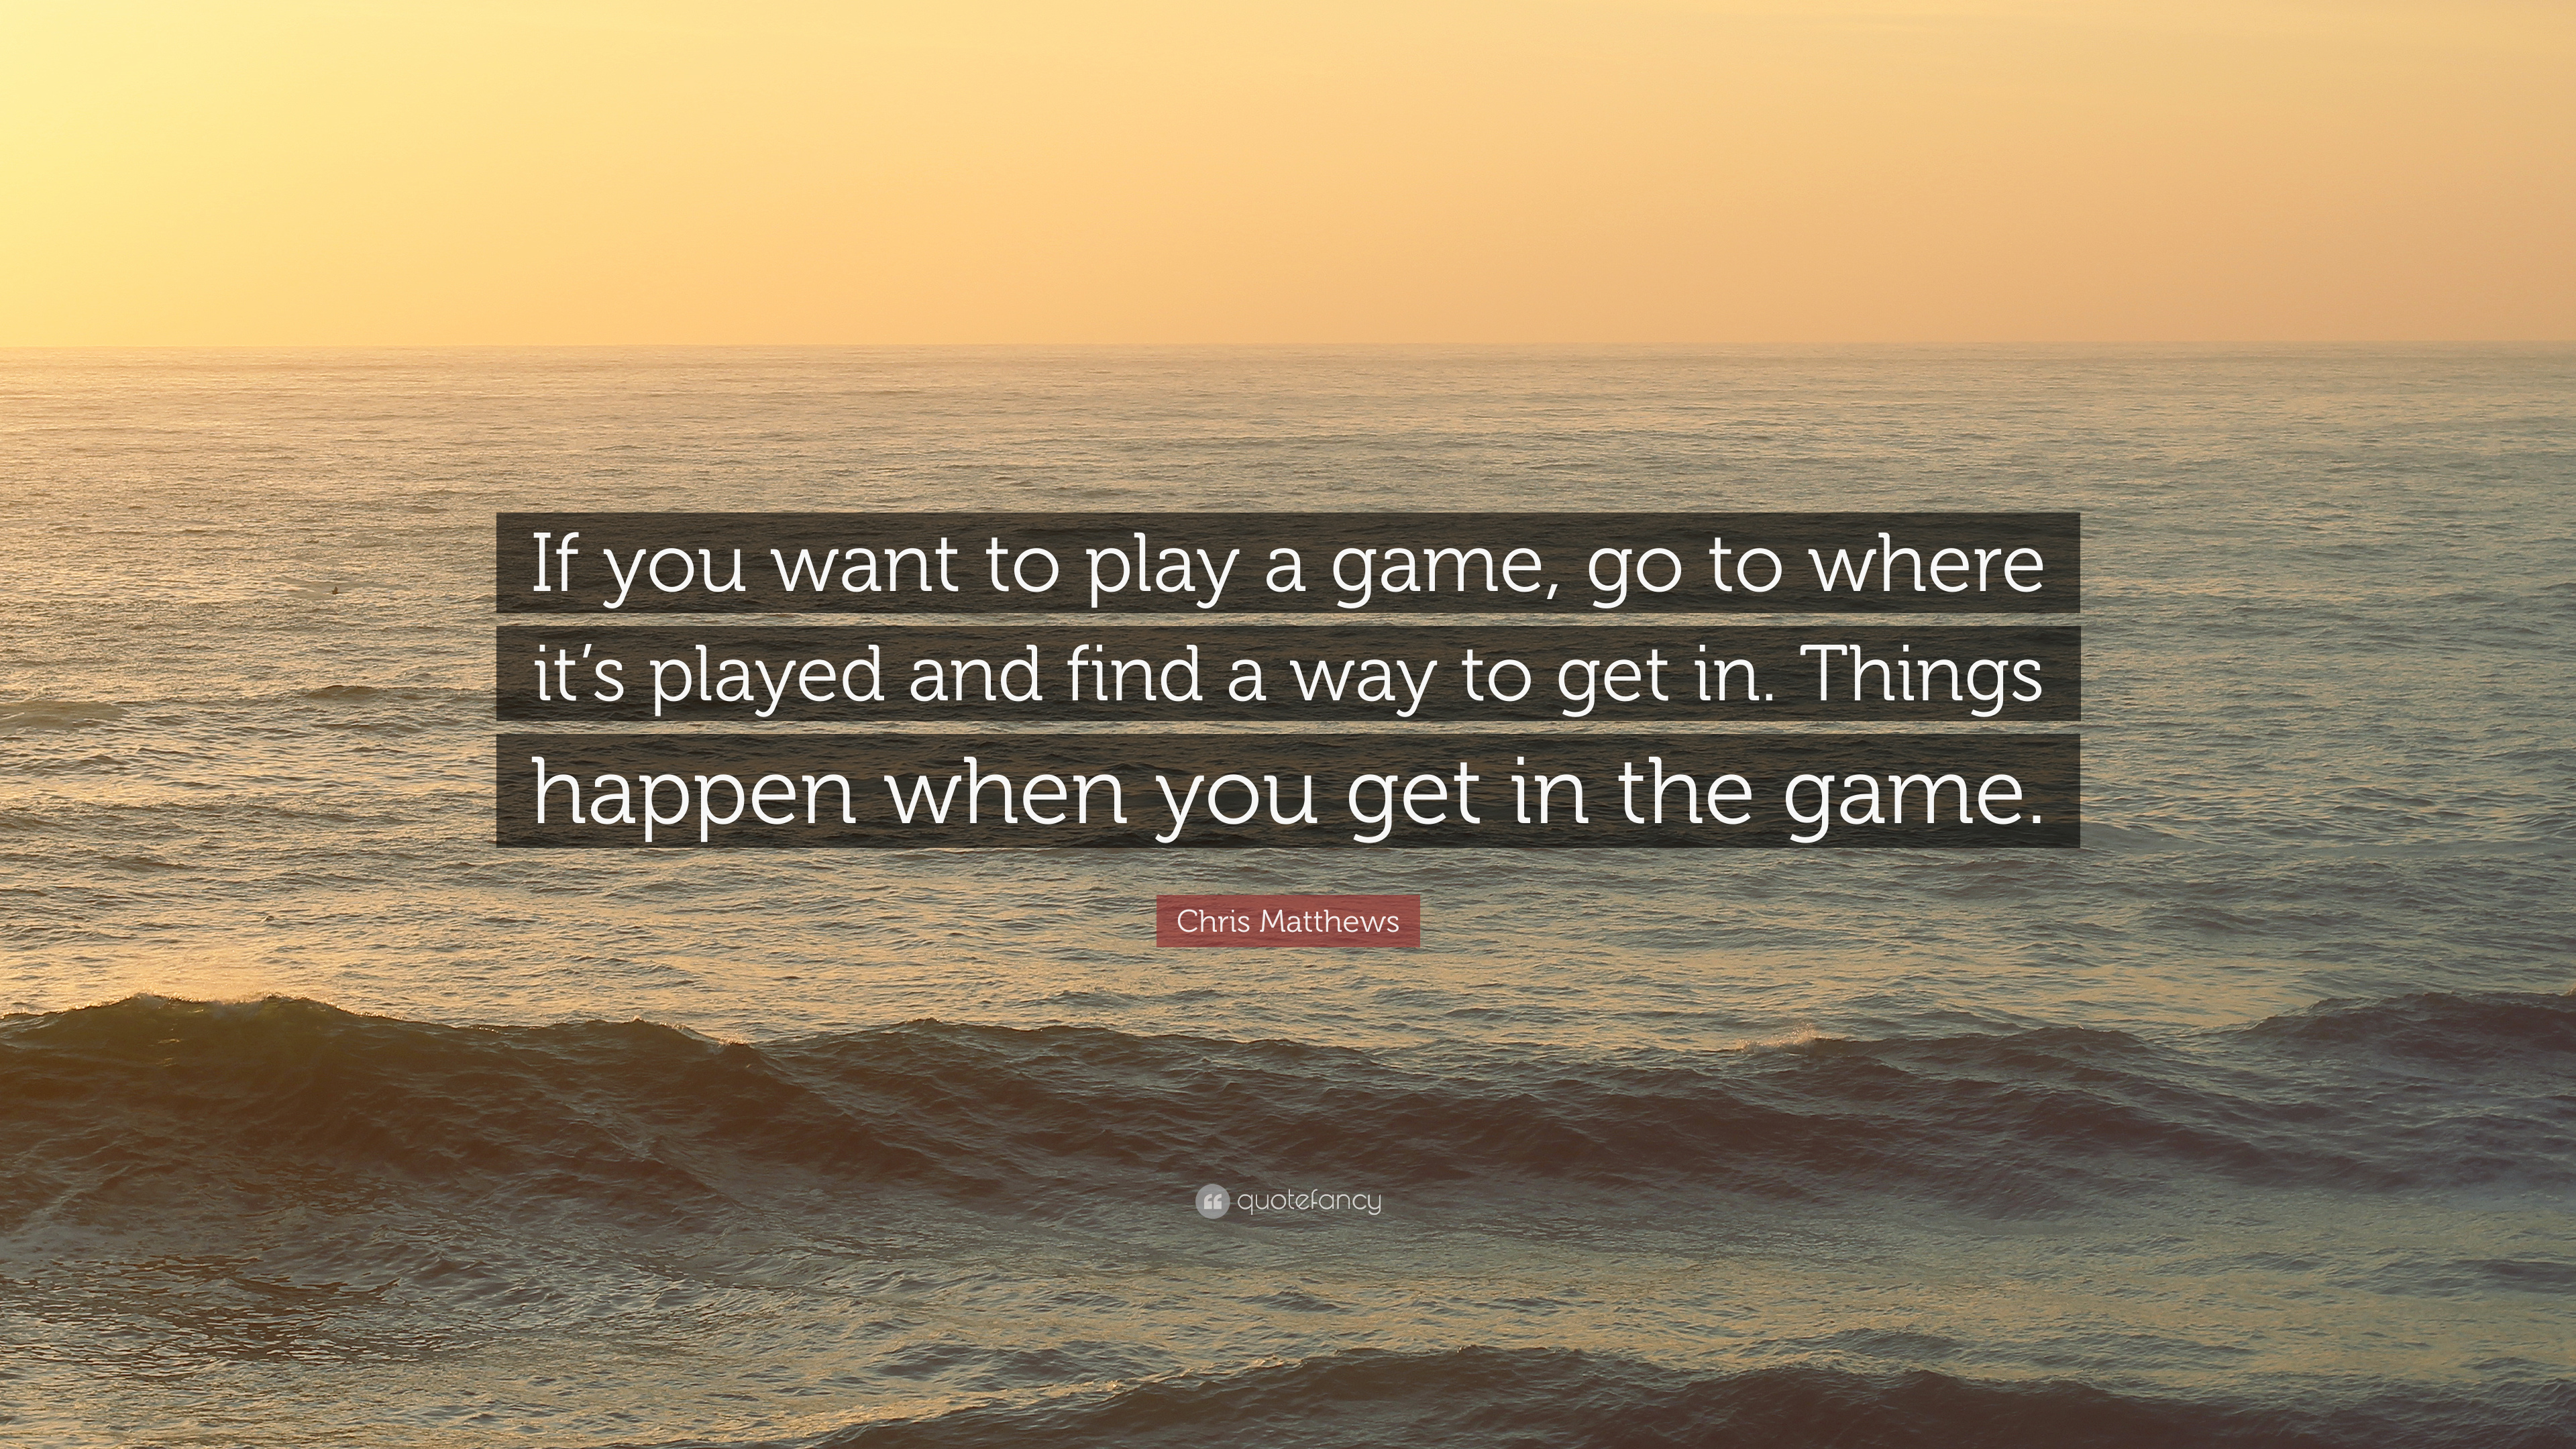 Chris Matthews Quote If You Want To Play A Game Go To Where Its